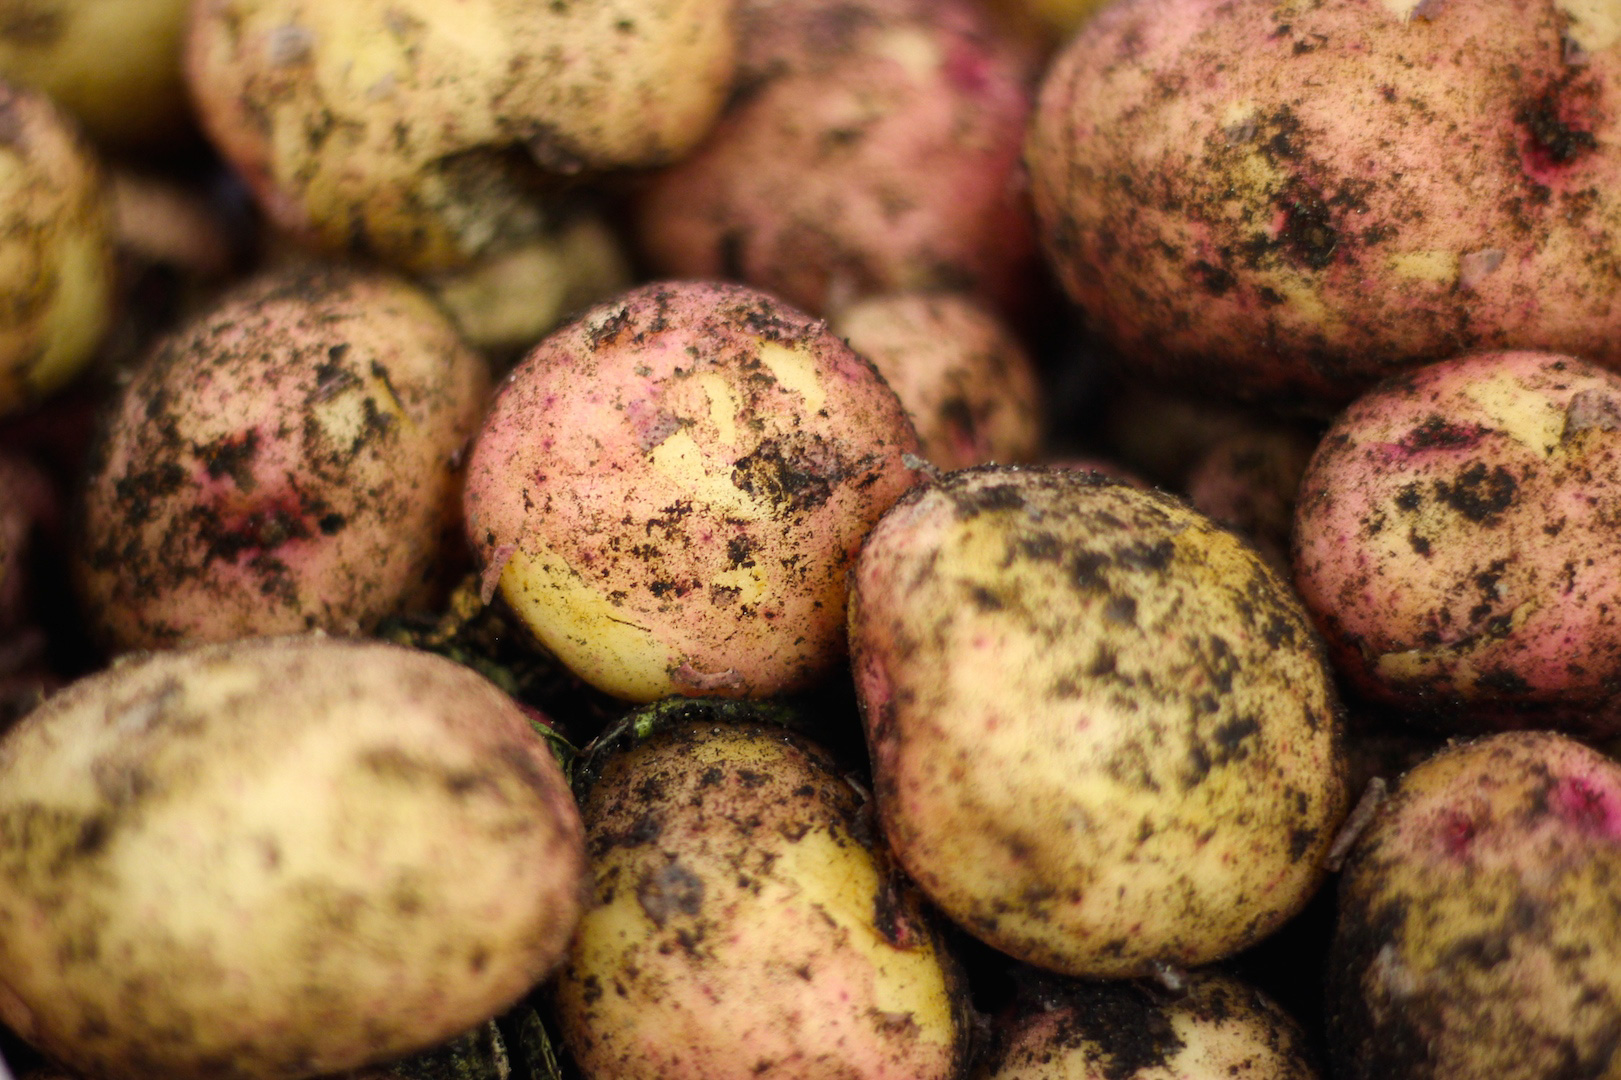 Iqaluit-grown potatoes generously donated by the Iqaluit Community Greenhouse Society. Photo by Sarah Brandvold.